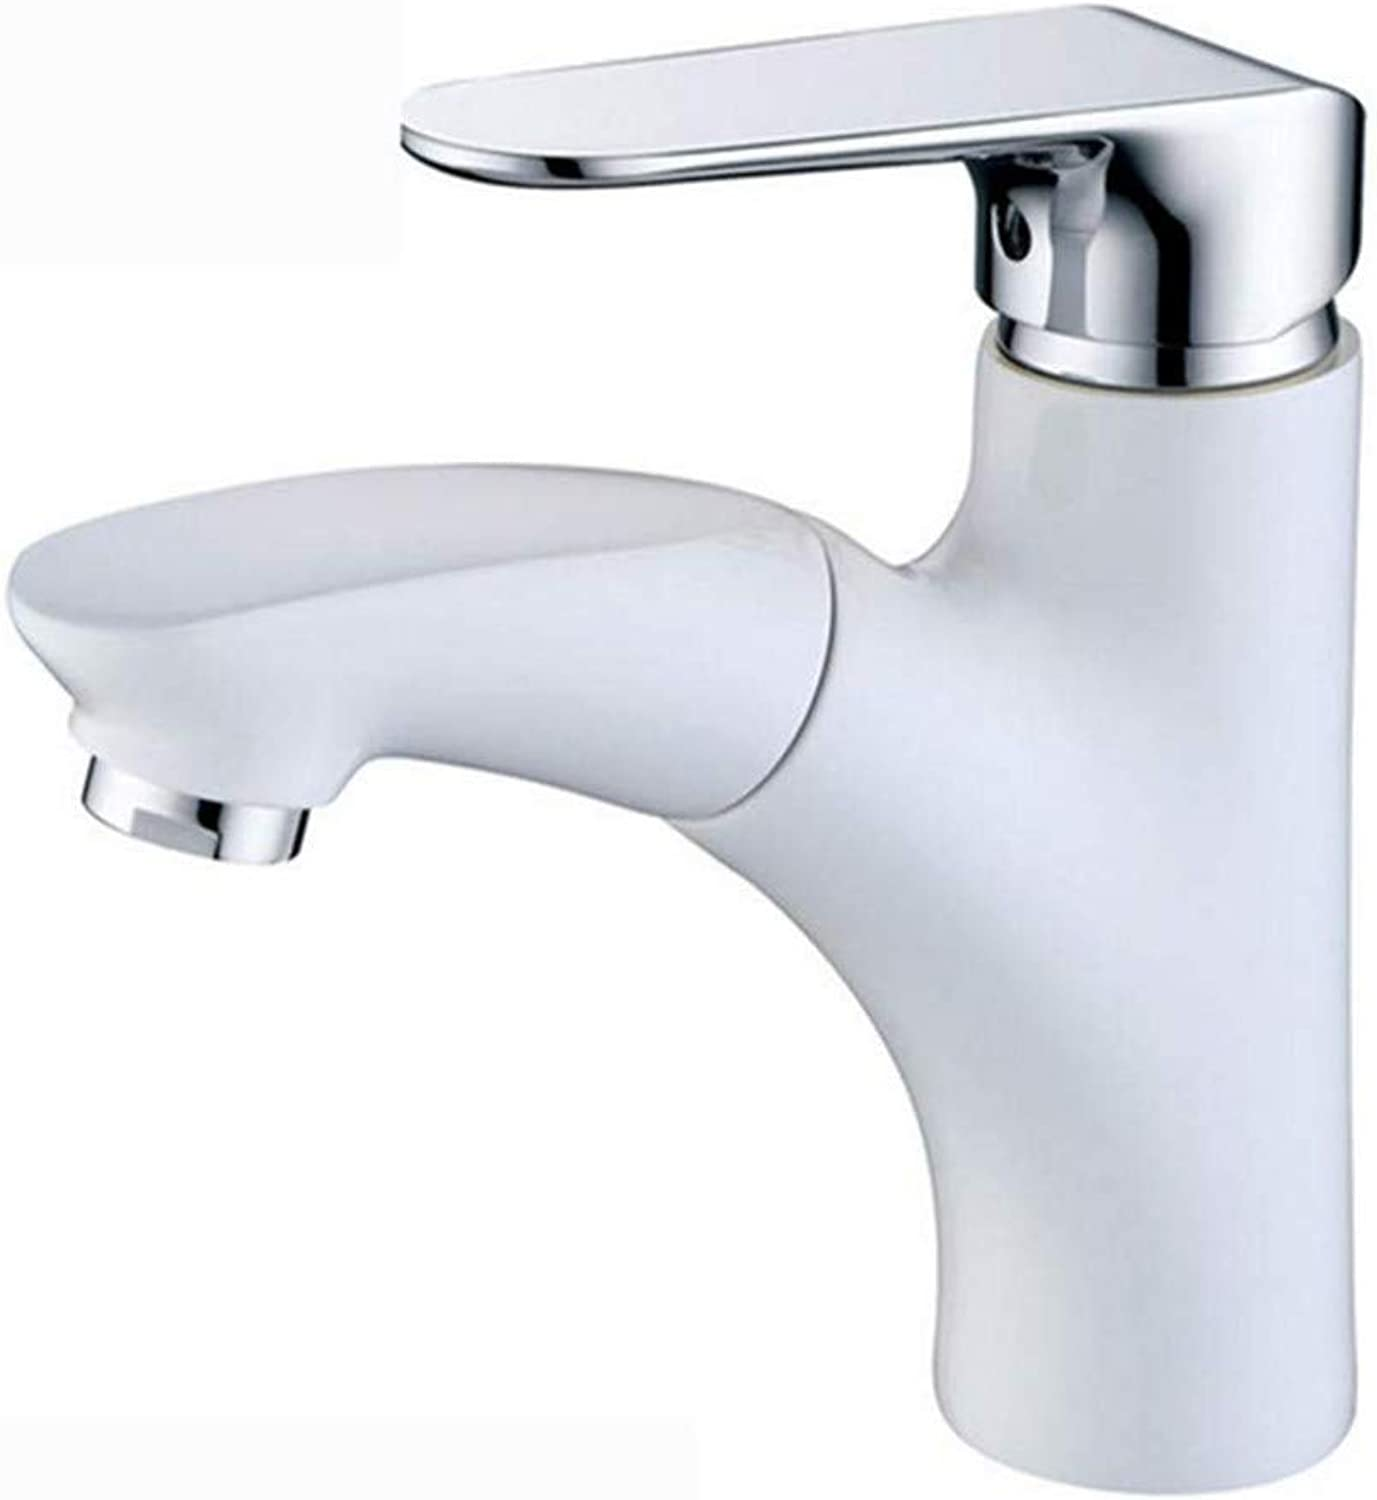 Basin Taps Swivel Spout Faucet White Modern Washbasin Sink Faucet